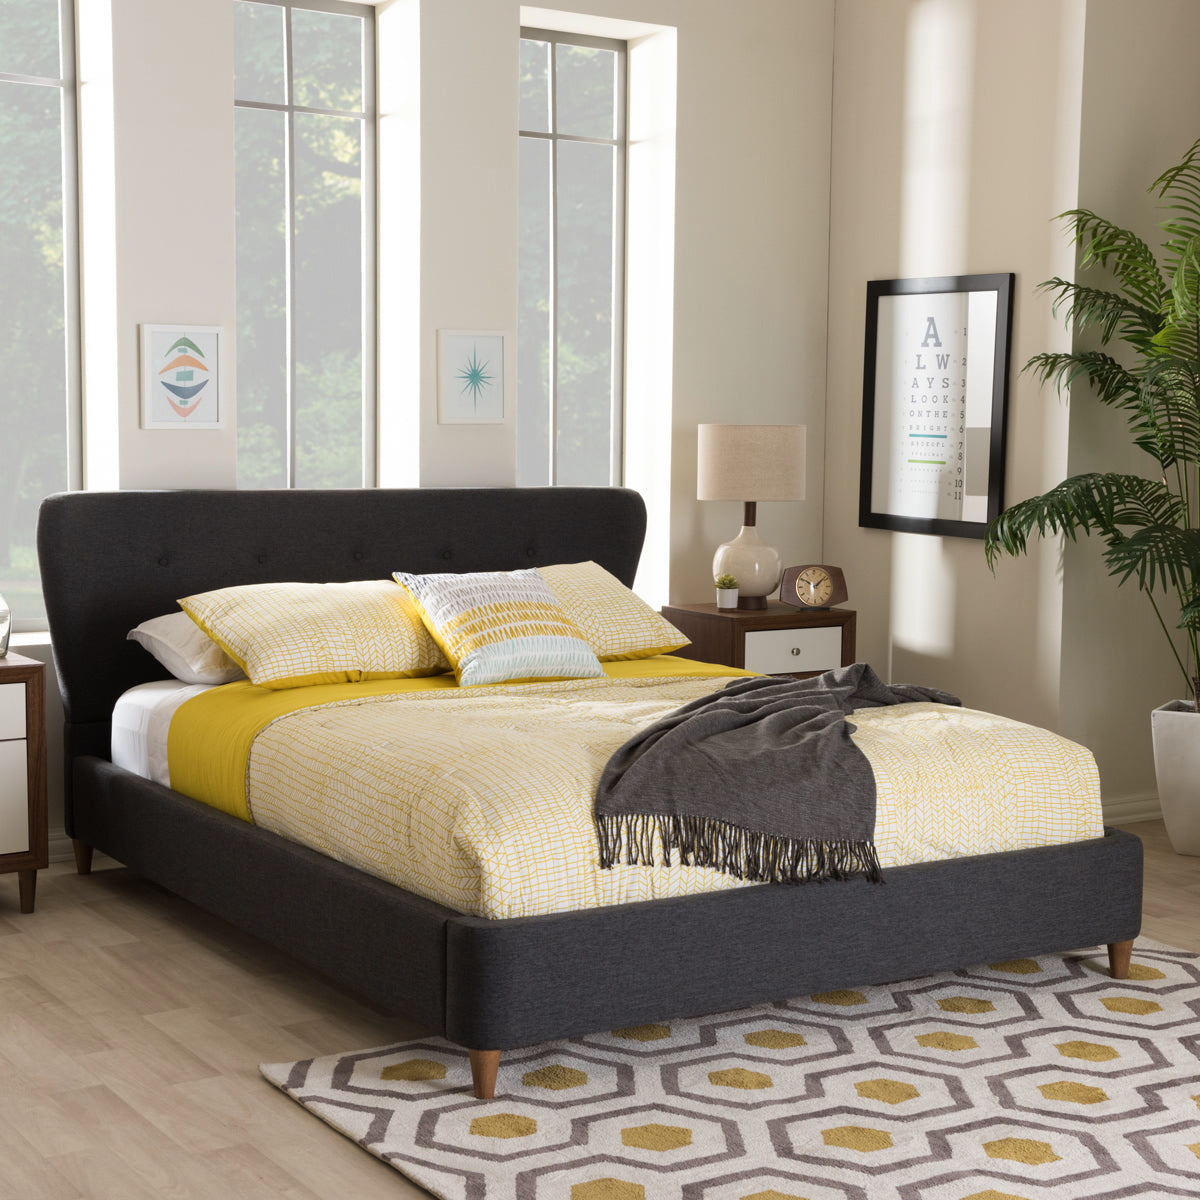 Baxton Studio Camden Mid-Century Modern Dark Grey Fabric Upholstered King Size Platform Bed Baxton Studio-King Bed-Minimal And Modern - 1